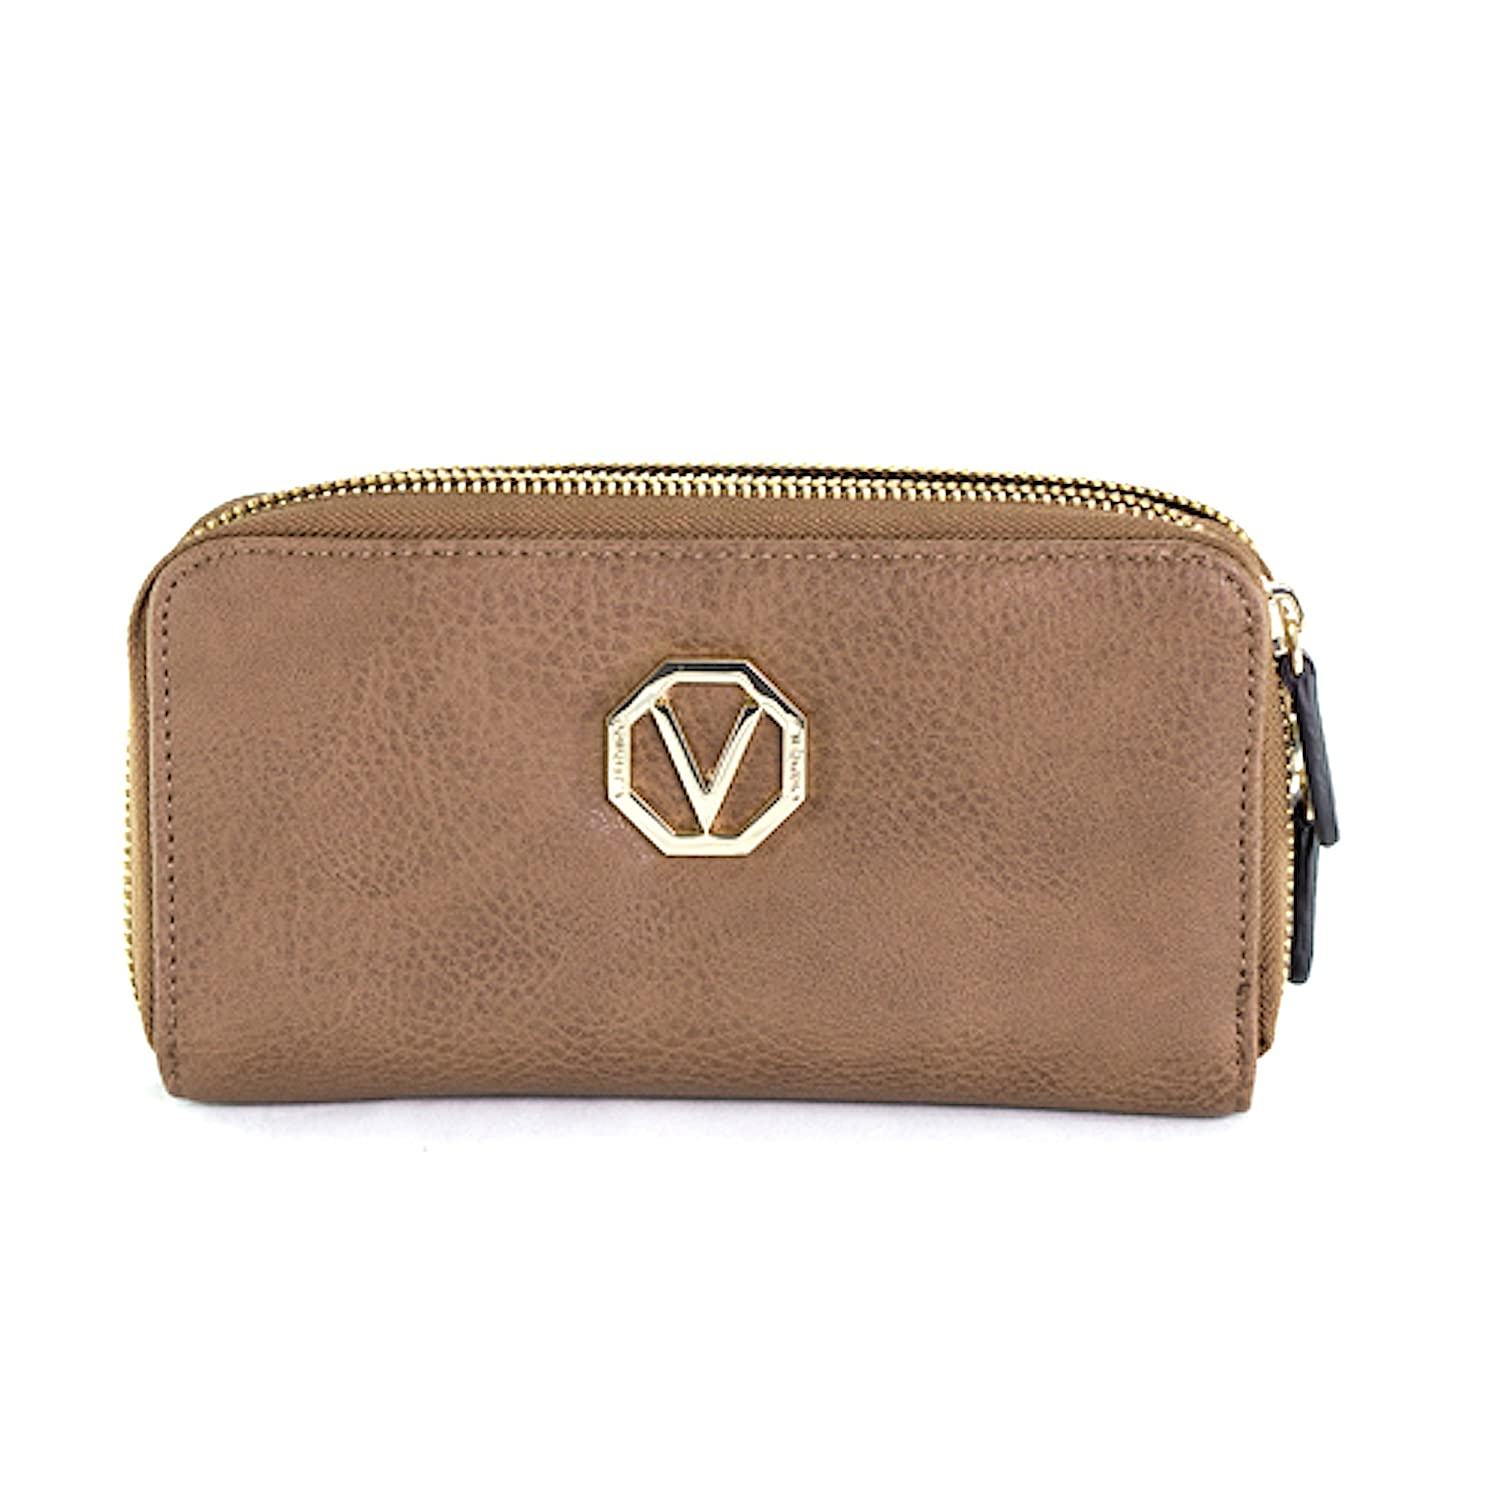 Valentino - Monedero Brow L 15,5cm H 9,5cm W 3,5cm: Amazon ...